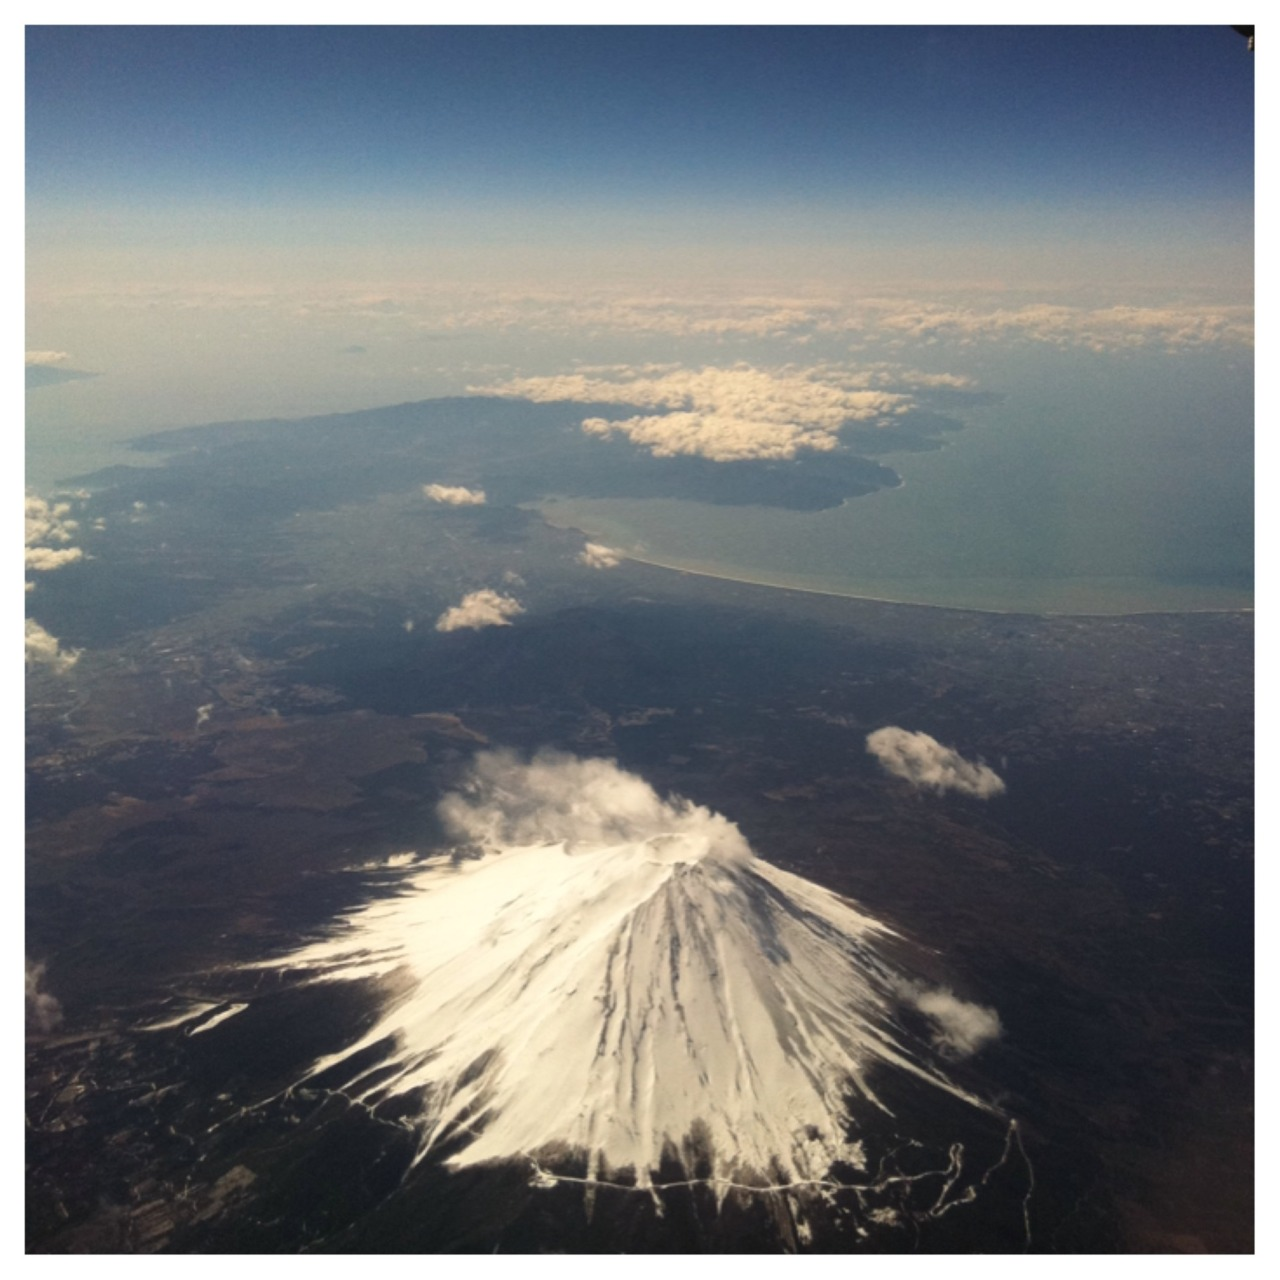 Mt. Fuji from our airplane! Tokyo here we come!